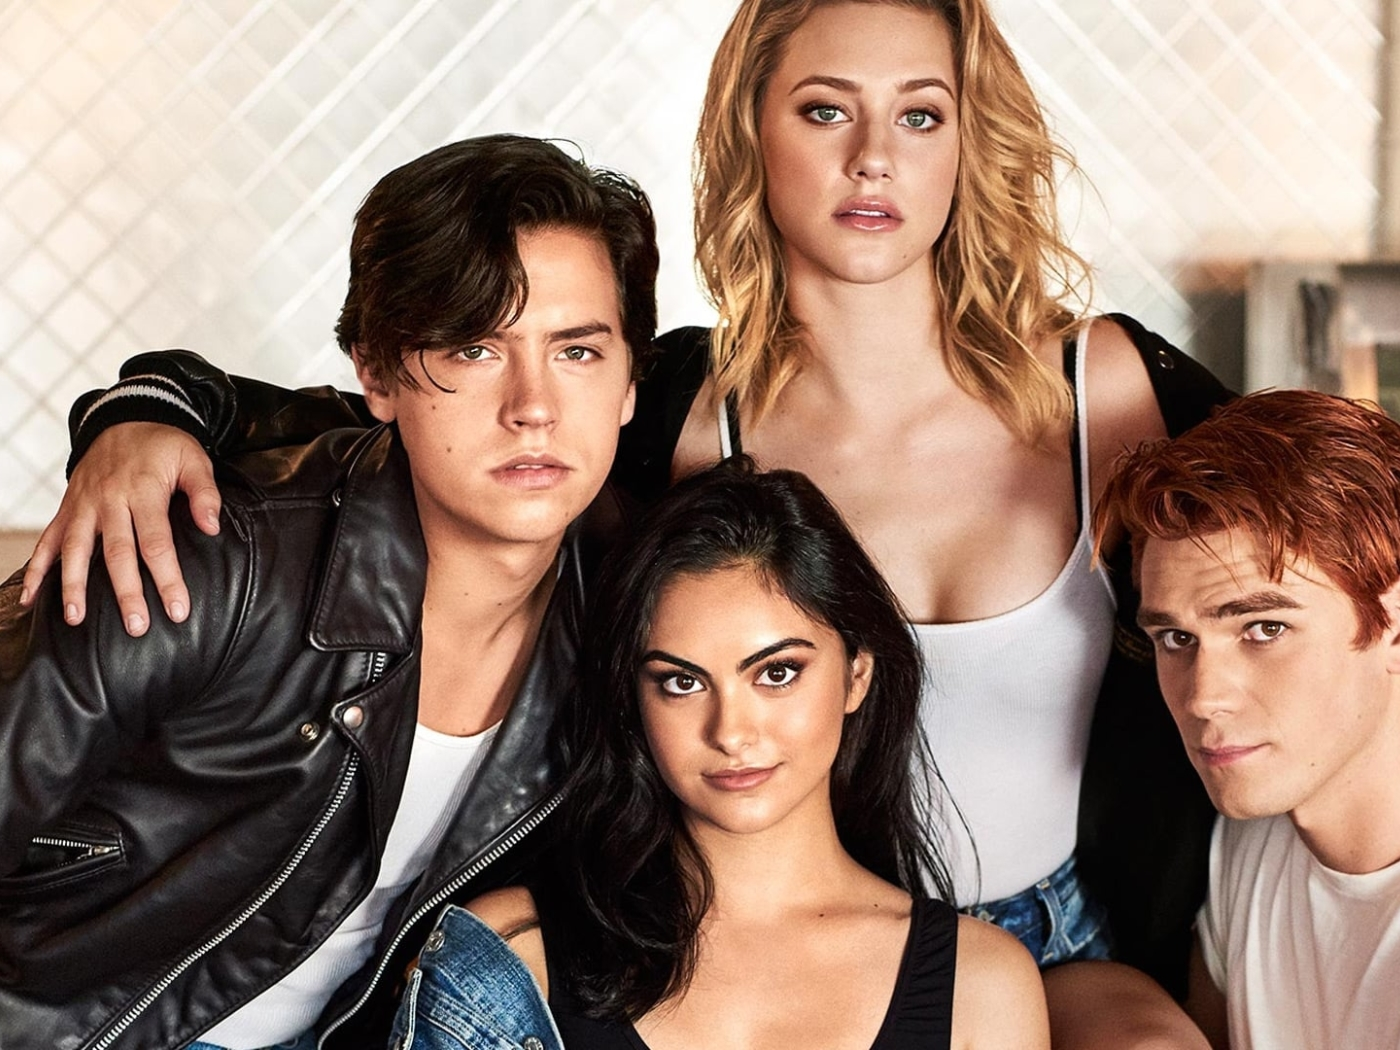 1400x1050 Riverdale Cast 1400x1050 Resolution Wallpaper, HD TV Series 4K Wallpapers, Images ...